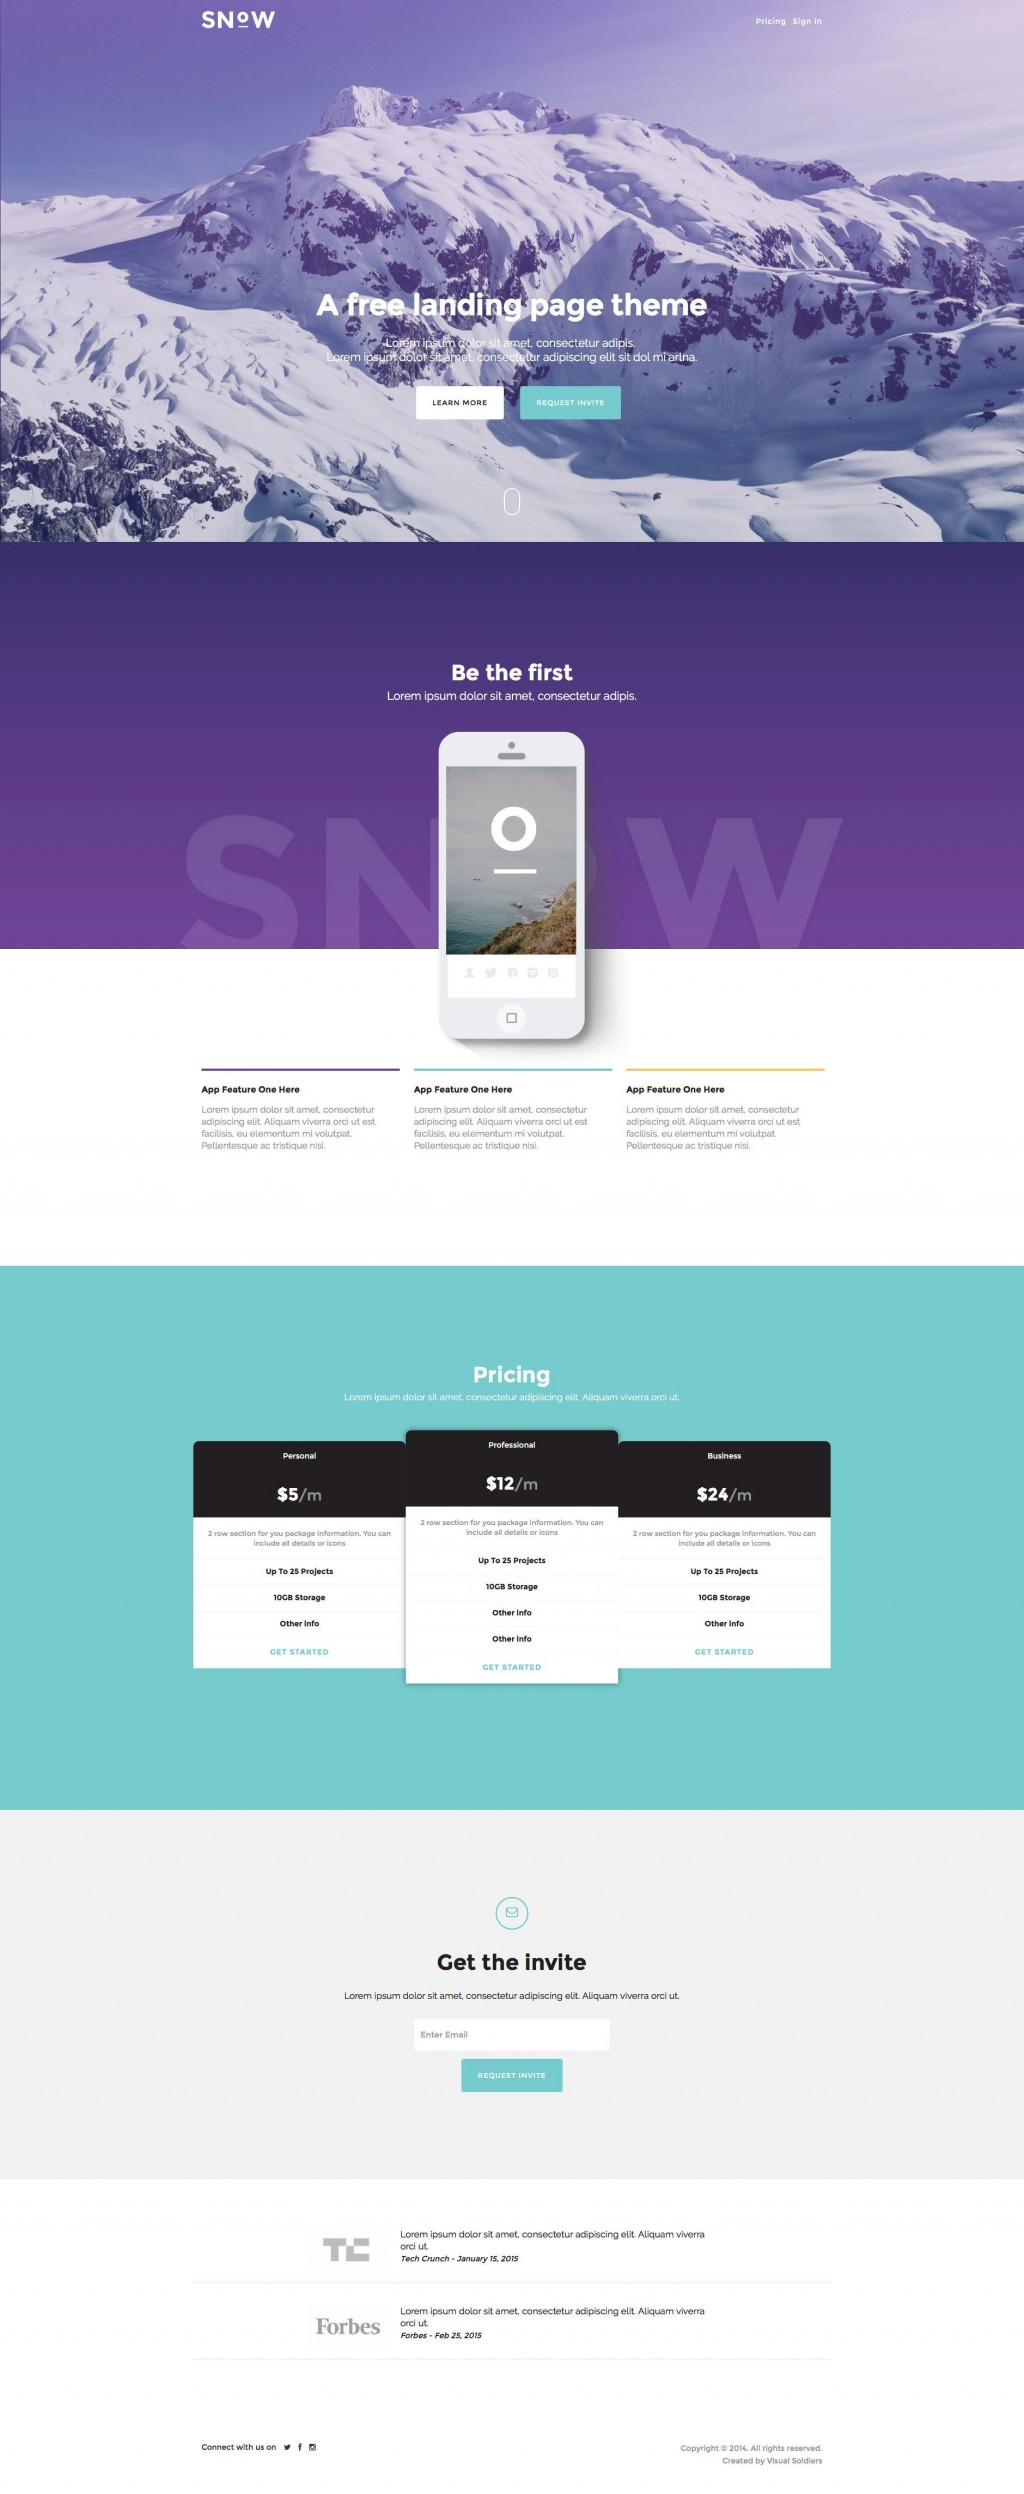 008 Stunning Product Website Template Html Free Download Image  With CsLarge